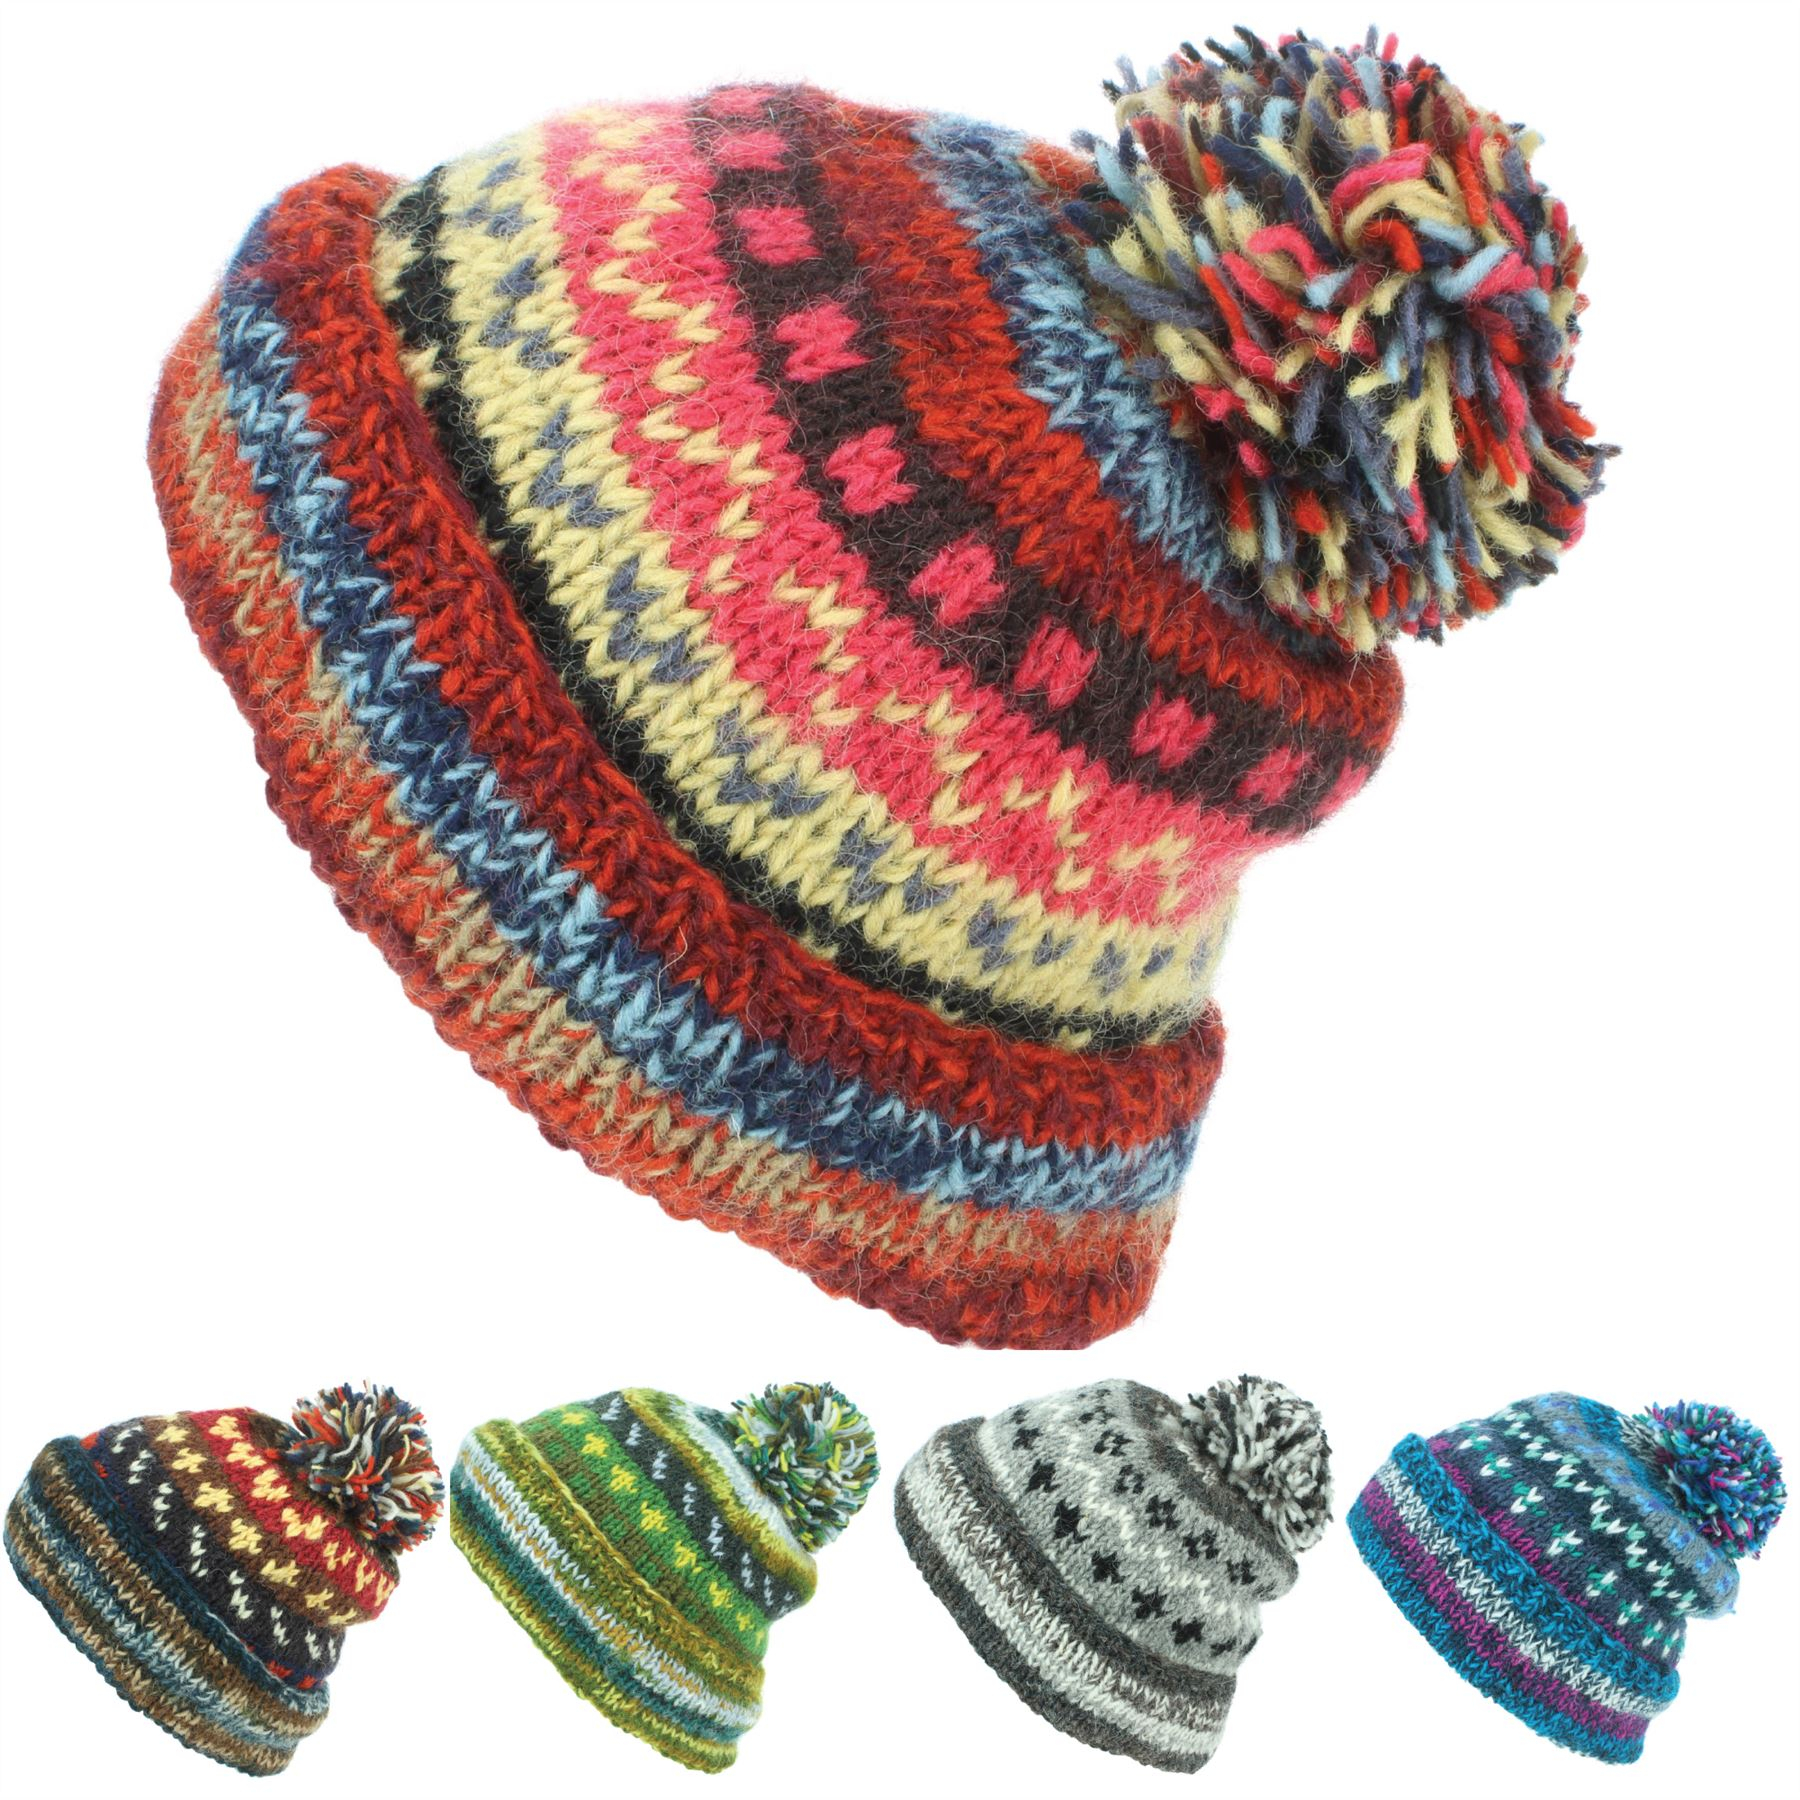 Bobble Hat Knitting Pattern Details About Chunky Wool Knit Beanie Bobble Hat Men Ladies Warm Winter Abstract Pattern Lined